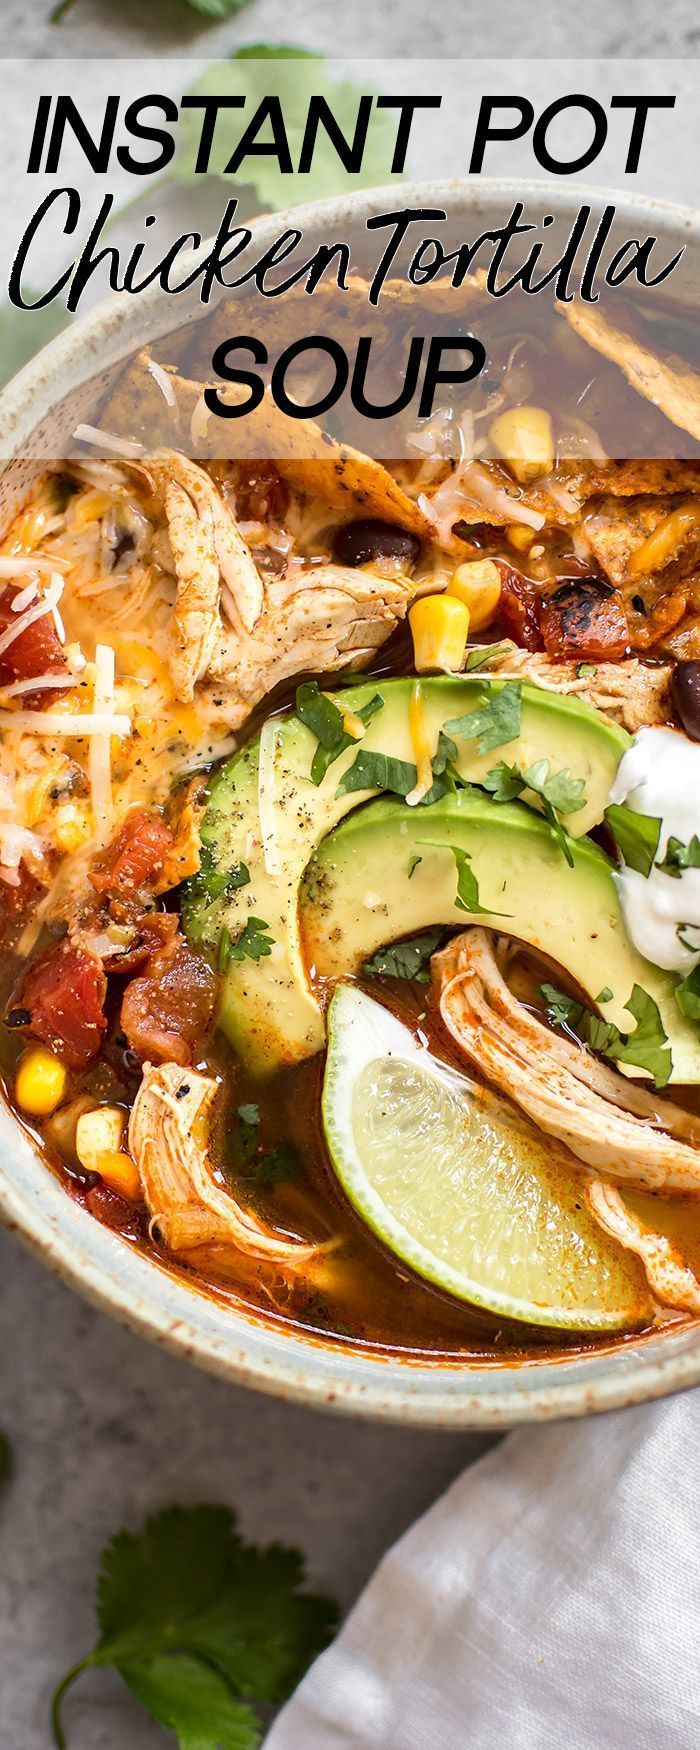 Pot Chicken Tortilla Soup This easy Instant Pot chicken tortilla soup recipe tastes like it's been cooked low and slow, but it's fast and requires minimal effort! This electric pressure cooker soup is healthy and delicious.This easy Instant Pot chicken tortilla soup recipe tastes like it's been cooked low and slow, but it's fast and requires minimal e...